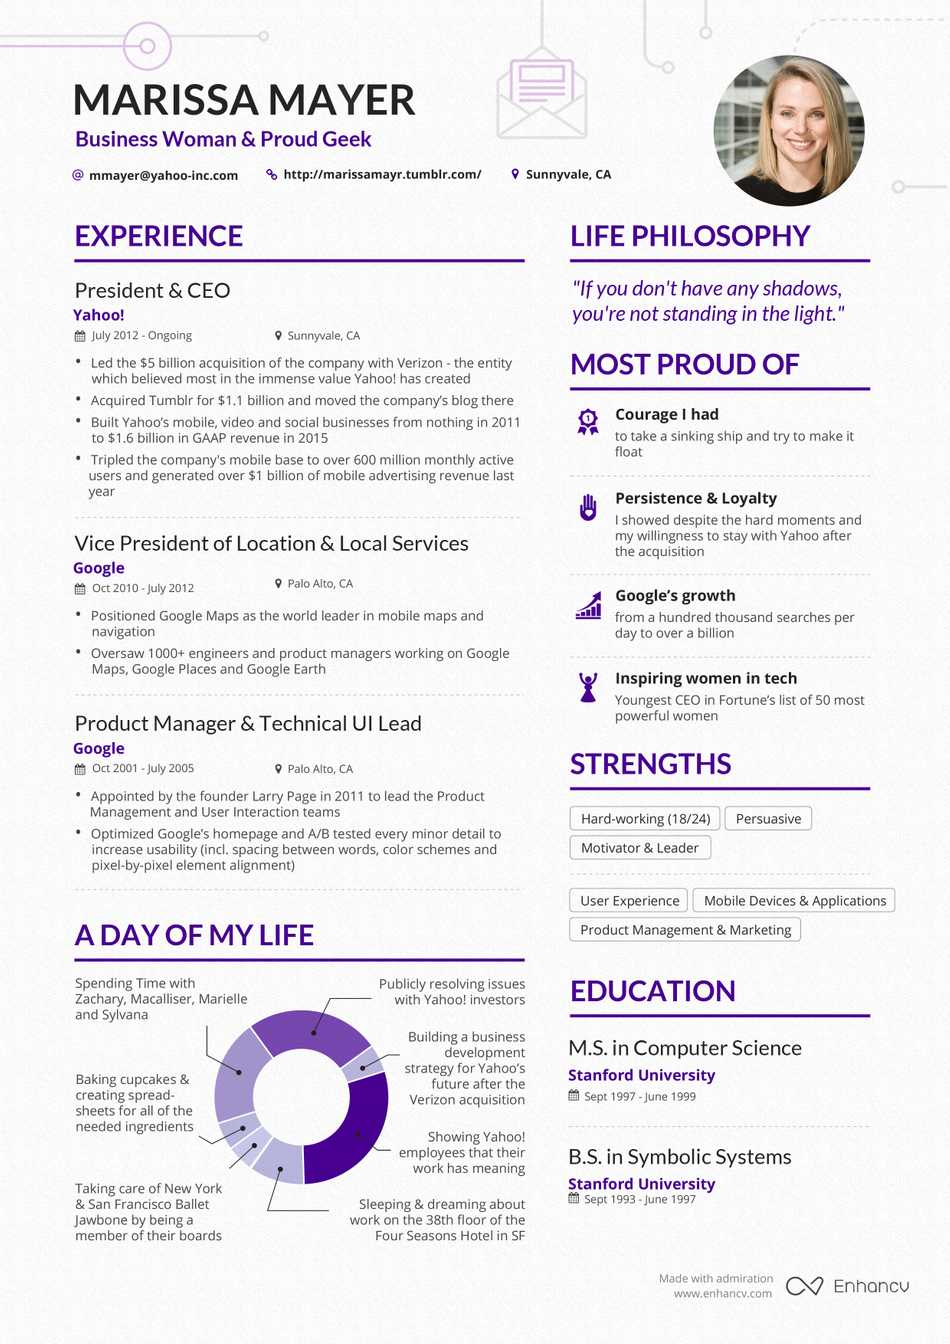 free resume builder enhancv for its professional marissa mayer senior accountant sample Resume Free Resume Builder For Its Professional